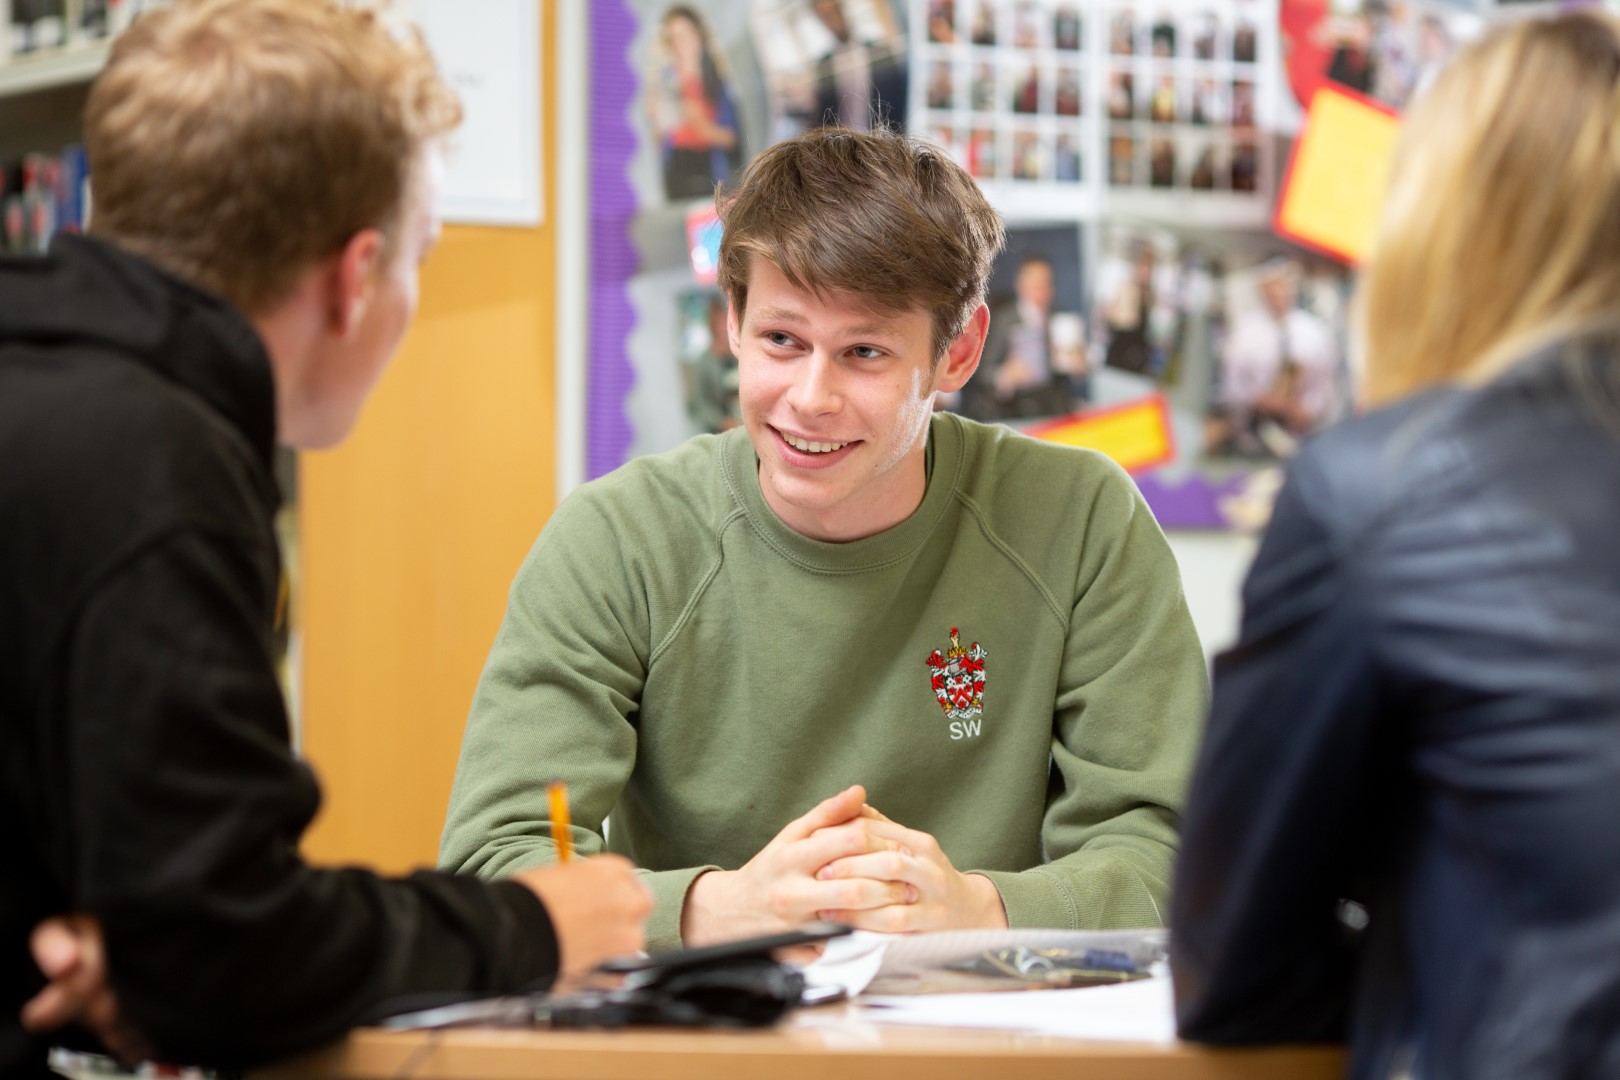 Sixth Form students engage in discussion